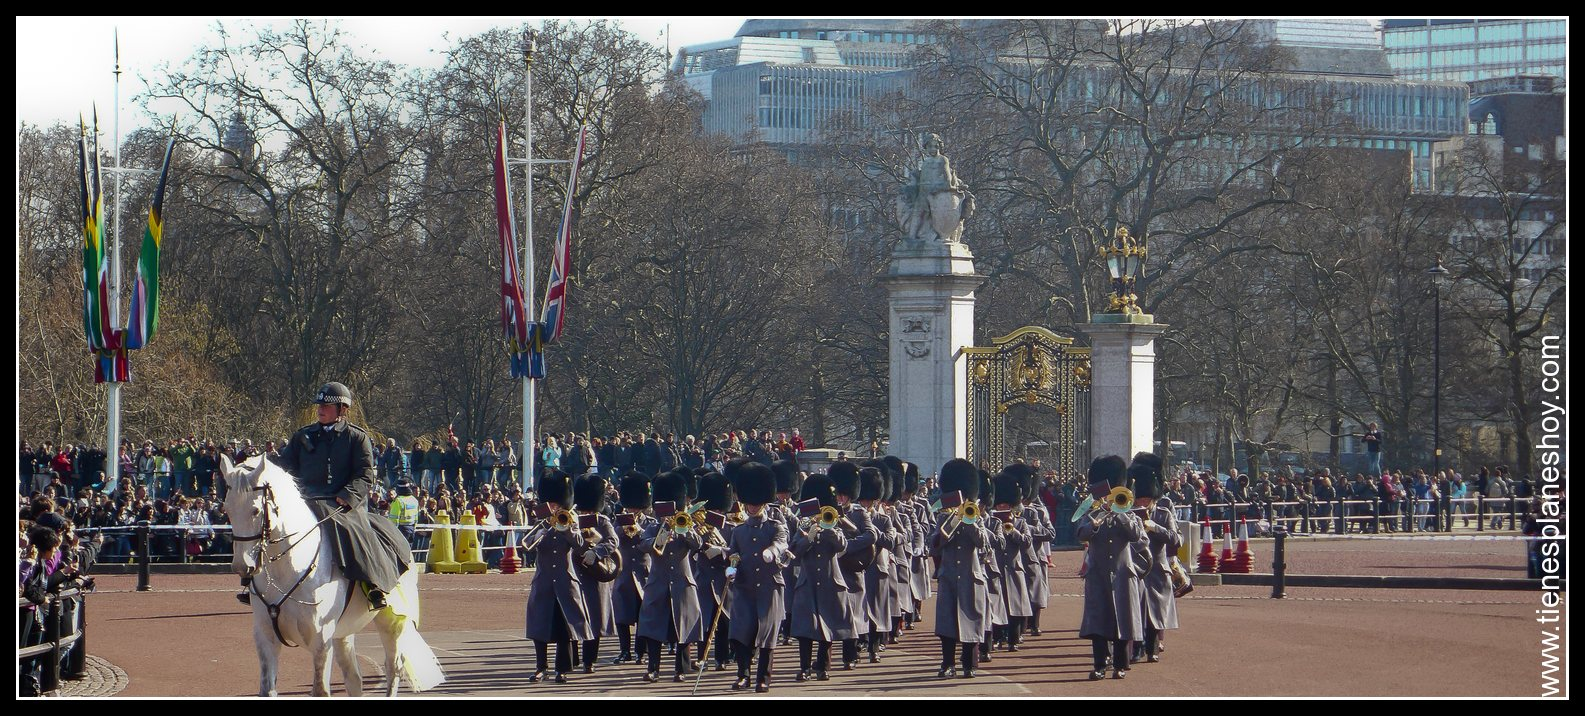 Cambio de Guardia Buckingham Palace Londres (London) Inglaterra